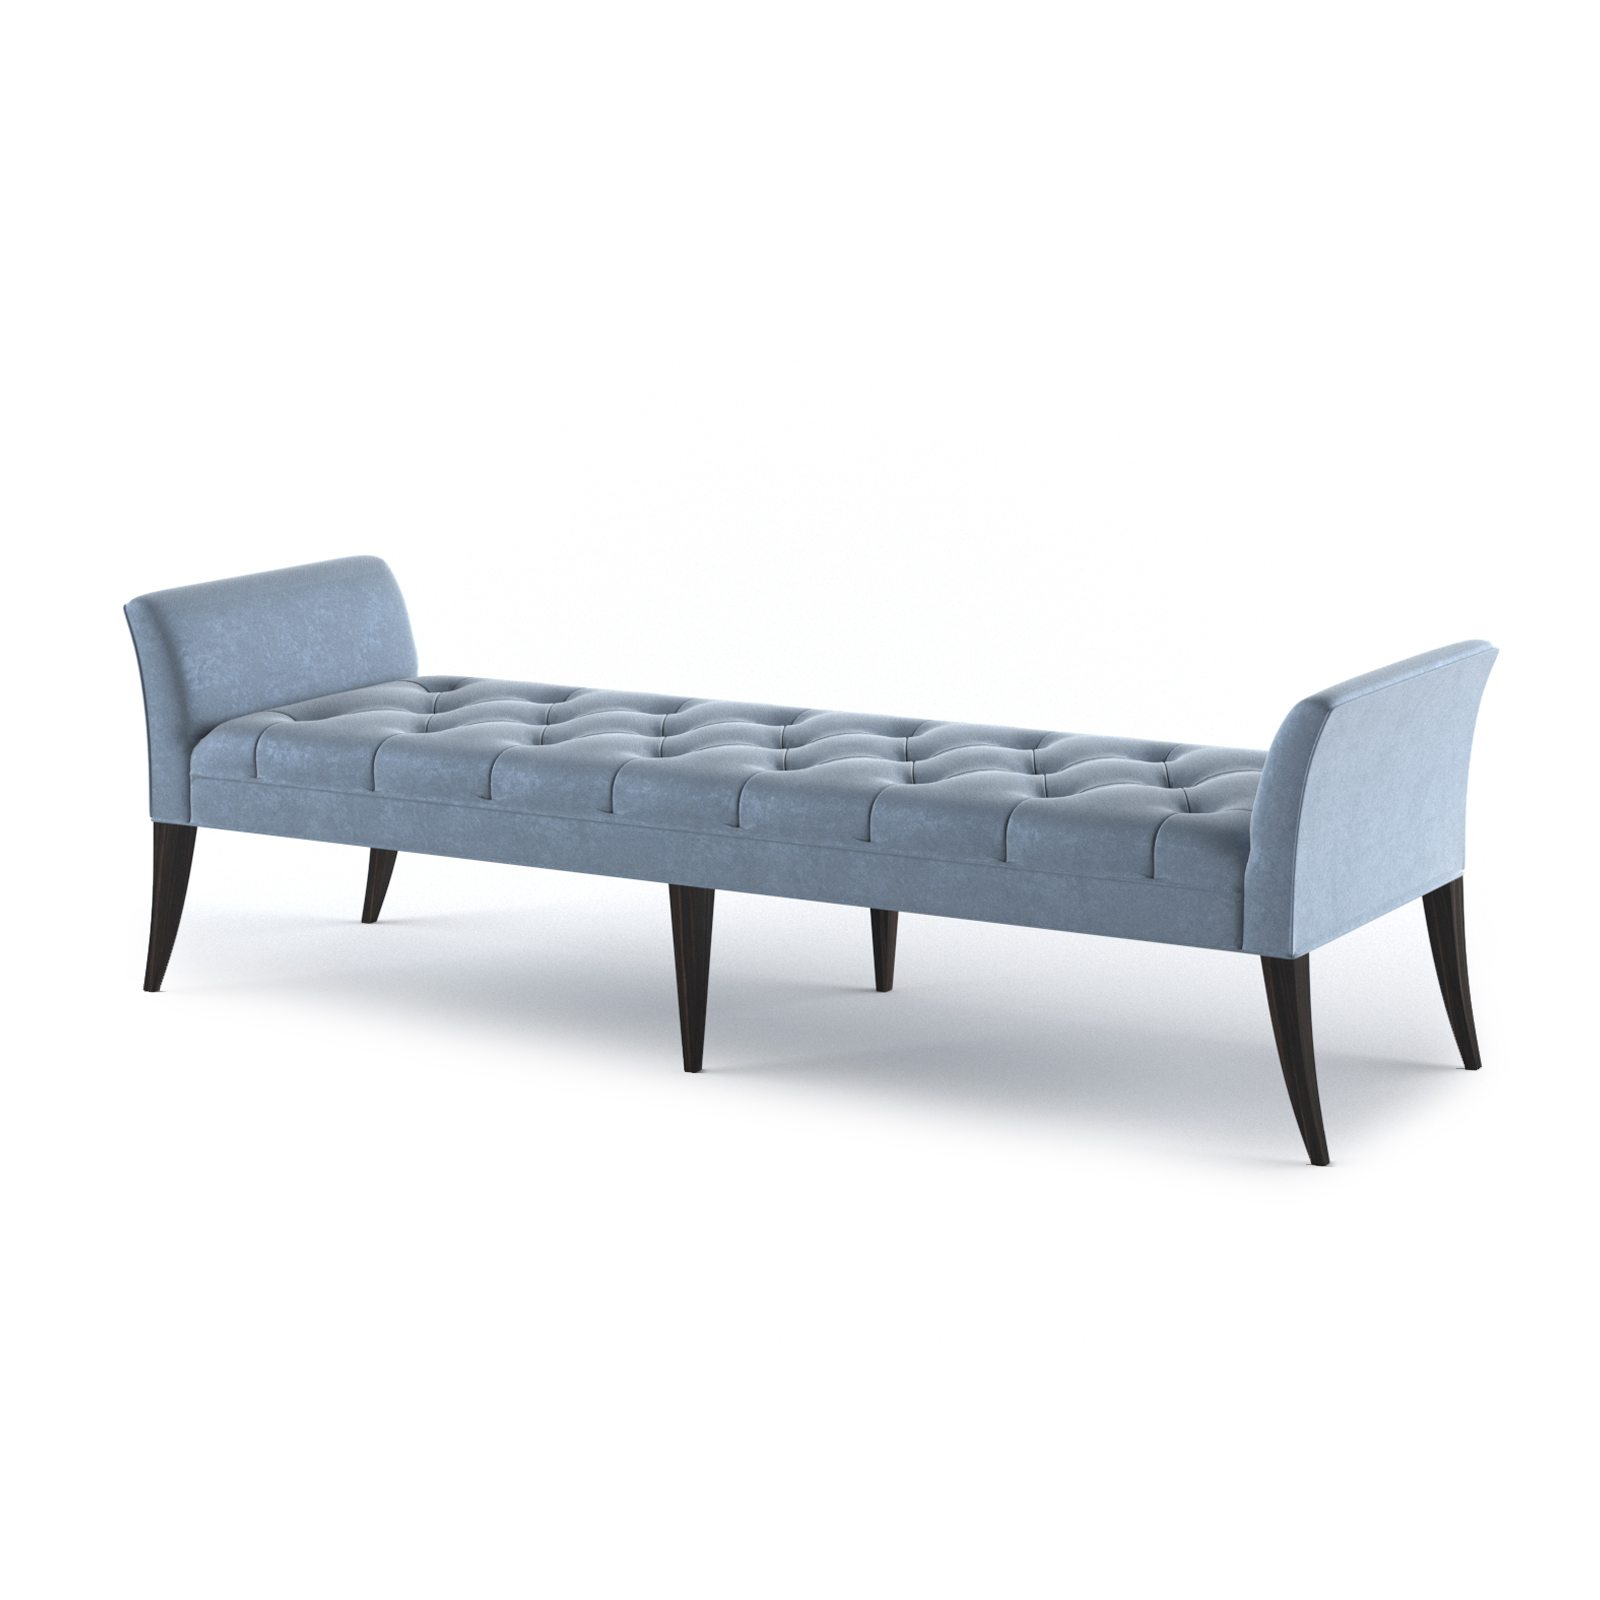 Altman Bench 02 by Bonham & Bonham 02